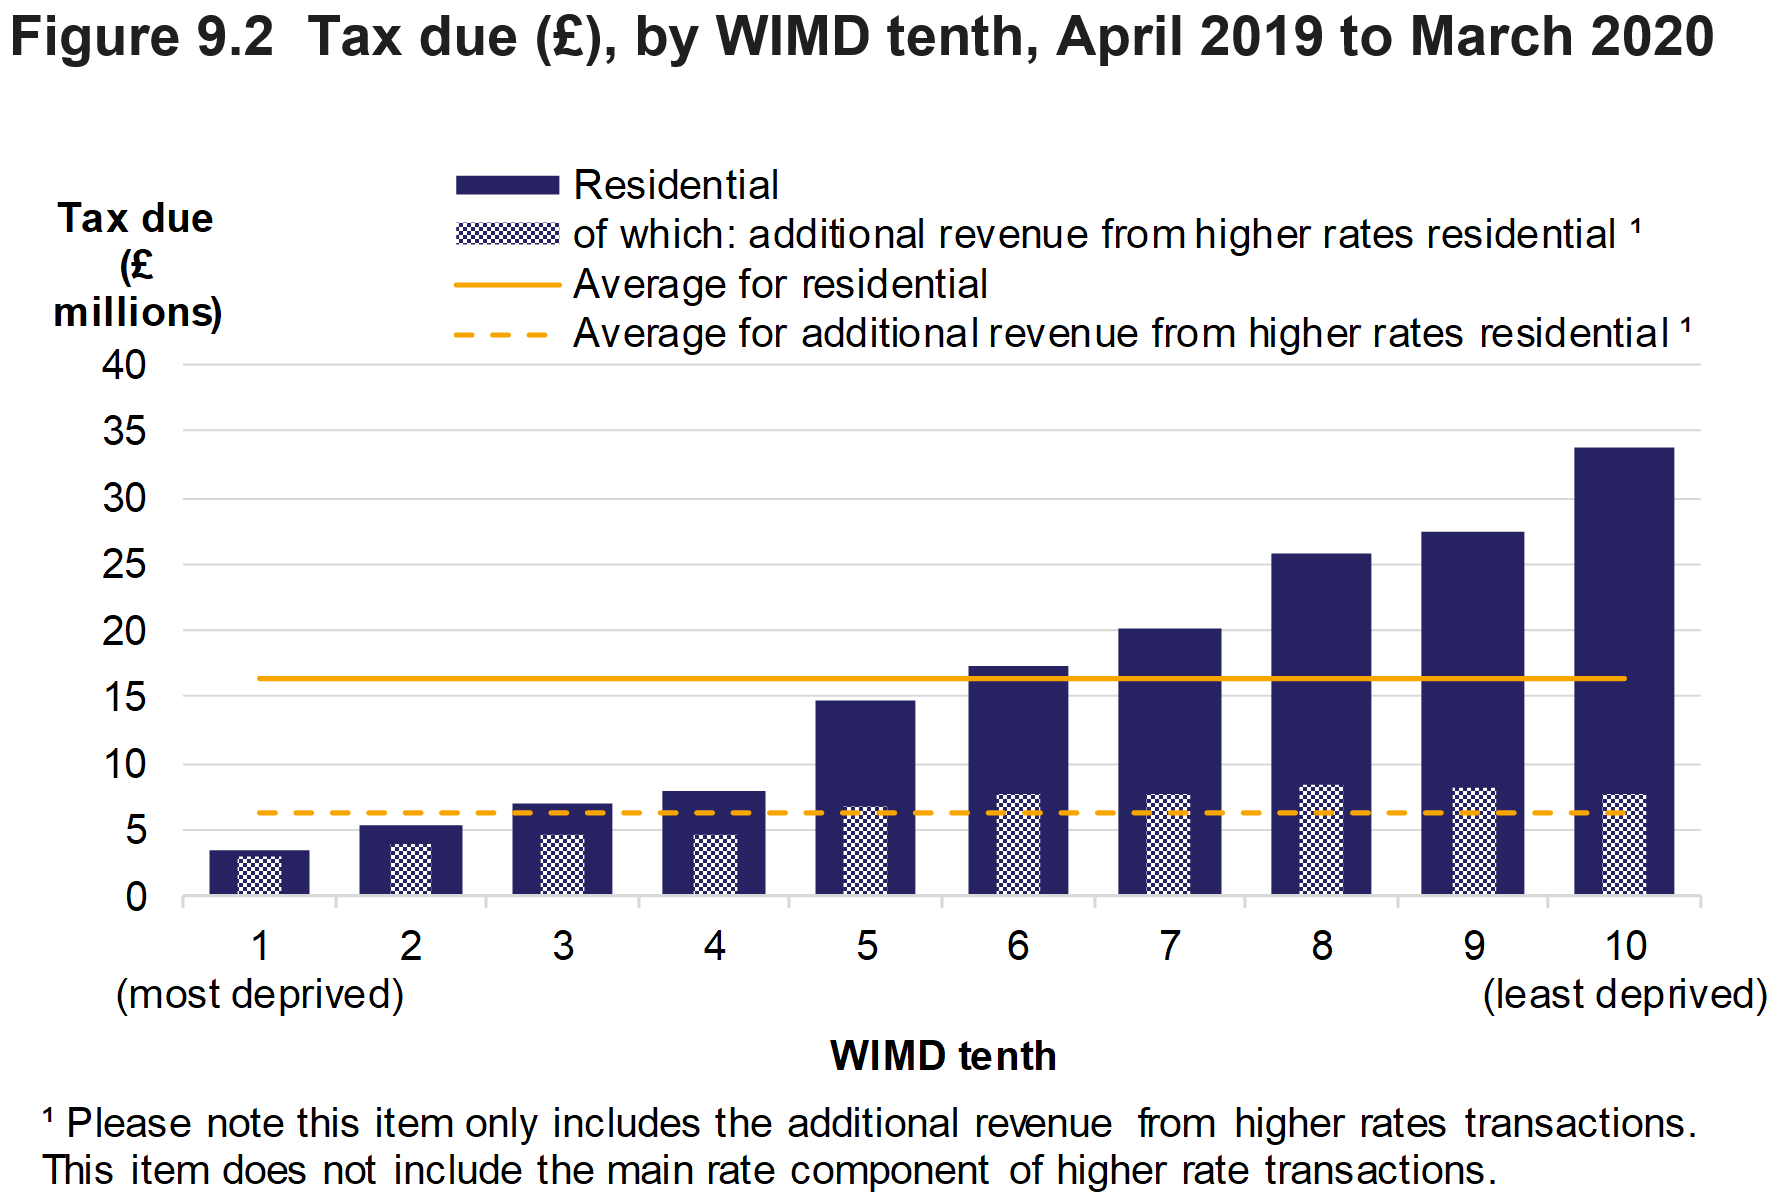 Figure 9.2 shows the amount of tax due on residential transactions and additional revenue from the higher rates, by WIMD tenth, for April 2019 to March 2020. Average values over all WIMD tenths are also presented.